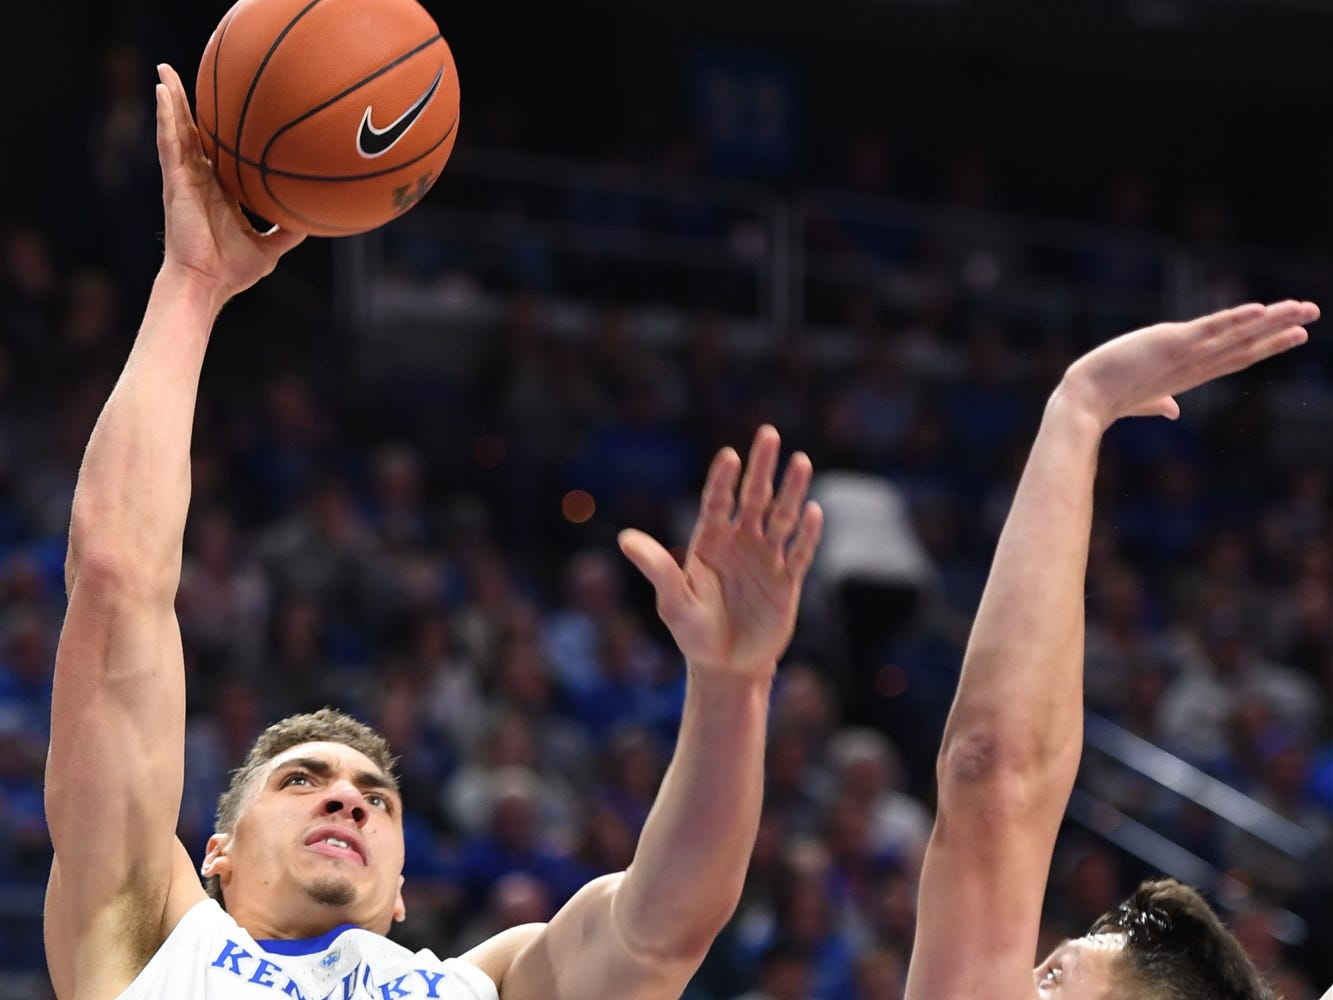 UK F Reid Travis puts up the ball during the University of Kentucky mens basketball game against VMI at Rupp Arena in Lexington, Kentucky on Sunday, November 18, 2018.